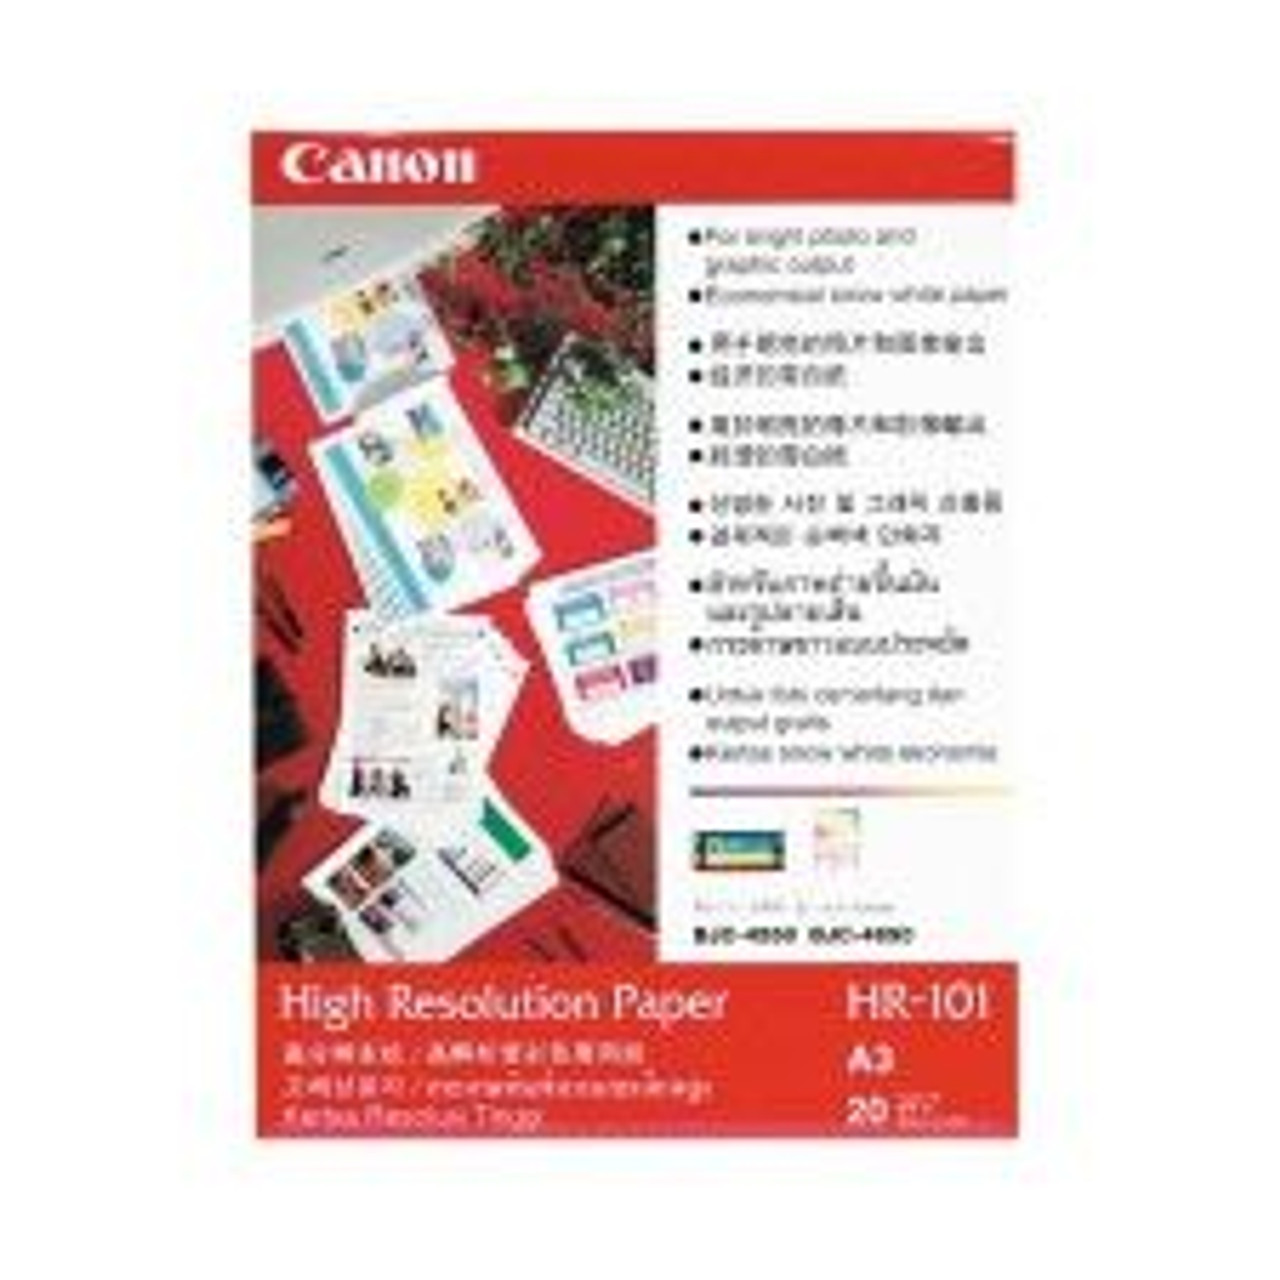 Image for Canon High Resolution A3 Paper 110 gsm (HR-101NA3II) CX Computer Superstore